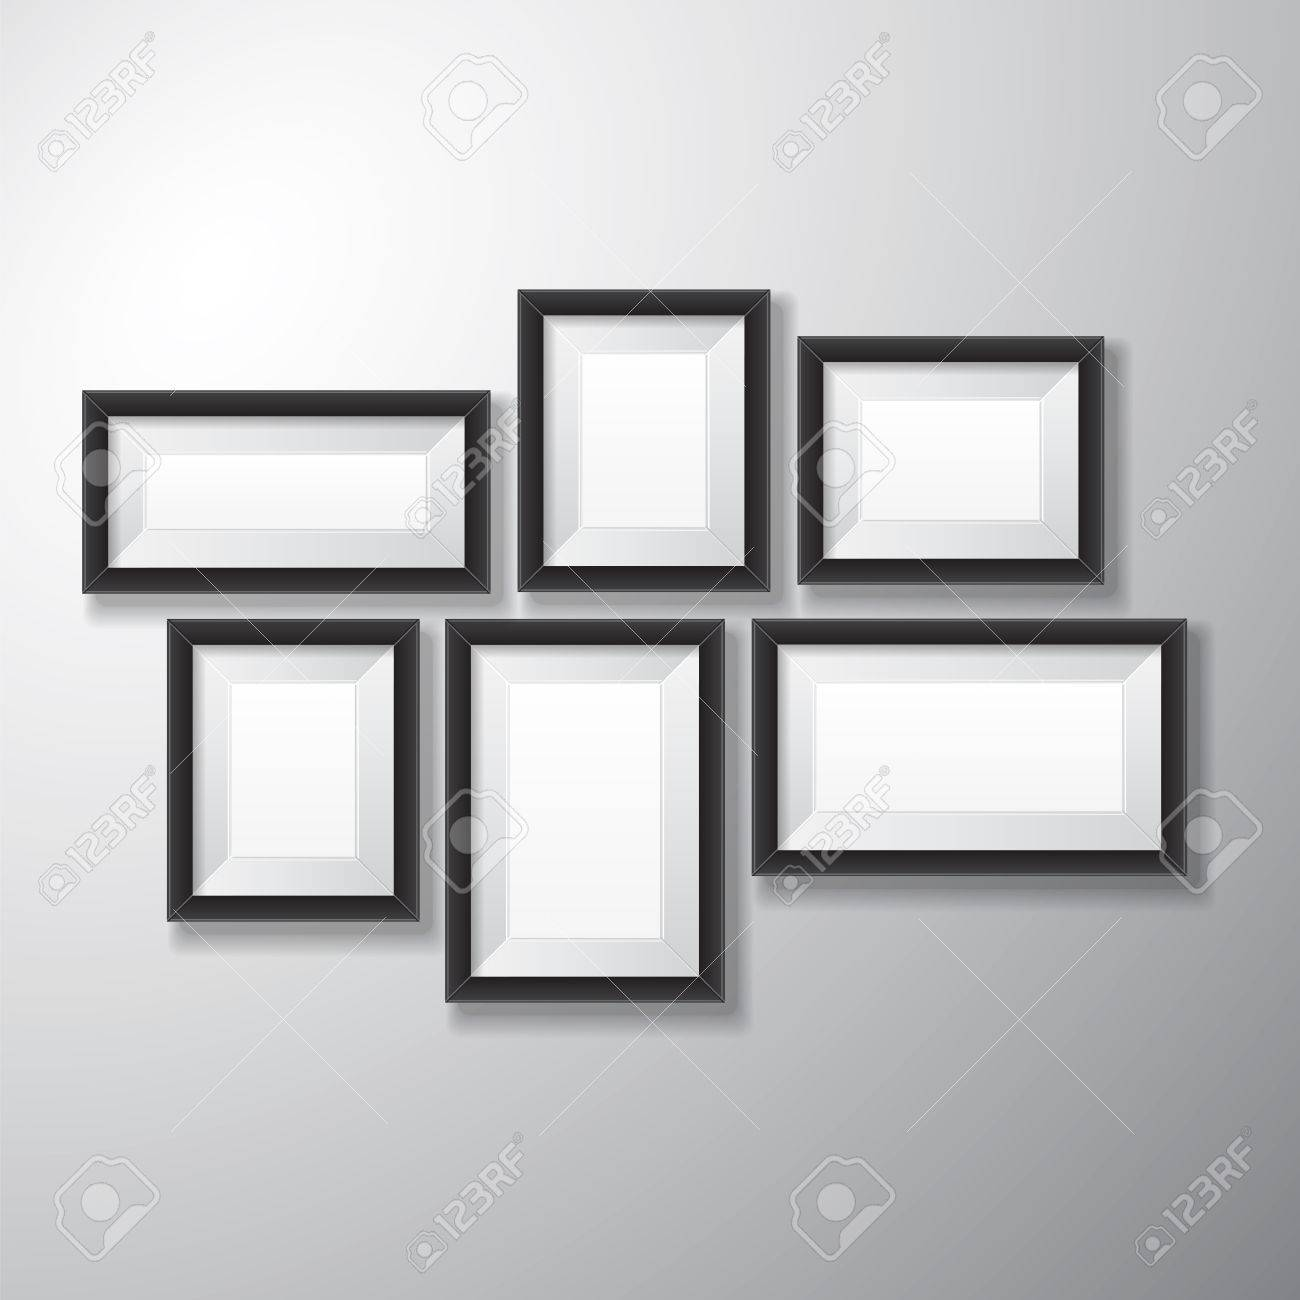 Variety sizes of realistic black picture frames with empty space variety sizes of realistic black picture frames with empty space isolated on white background for presentation jeuxipadfo Gallery